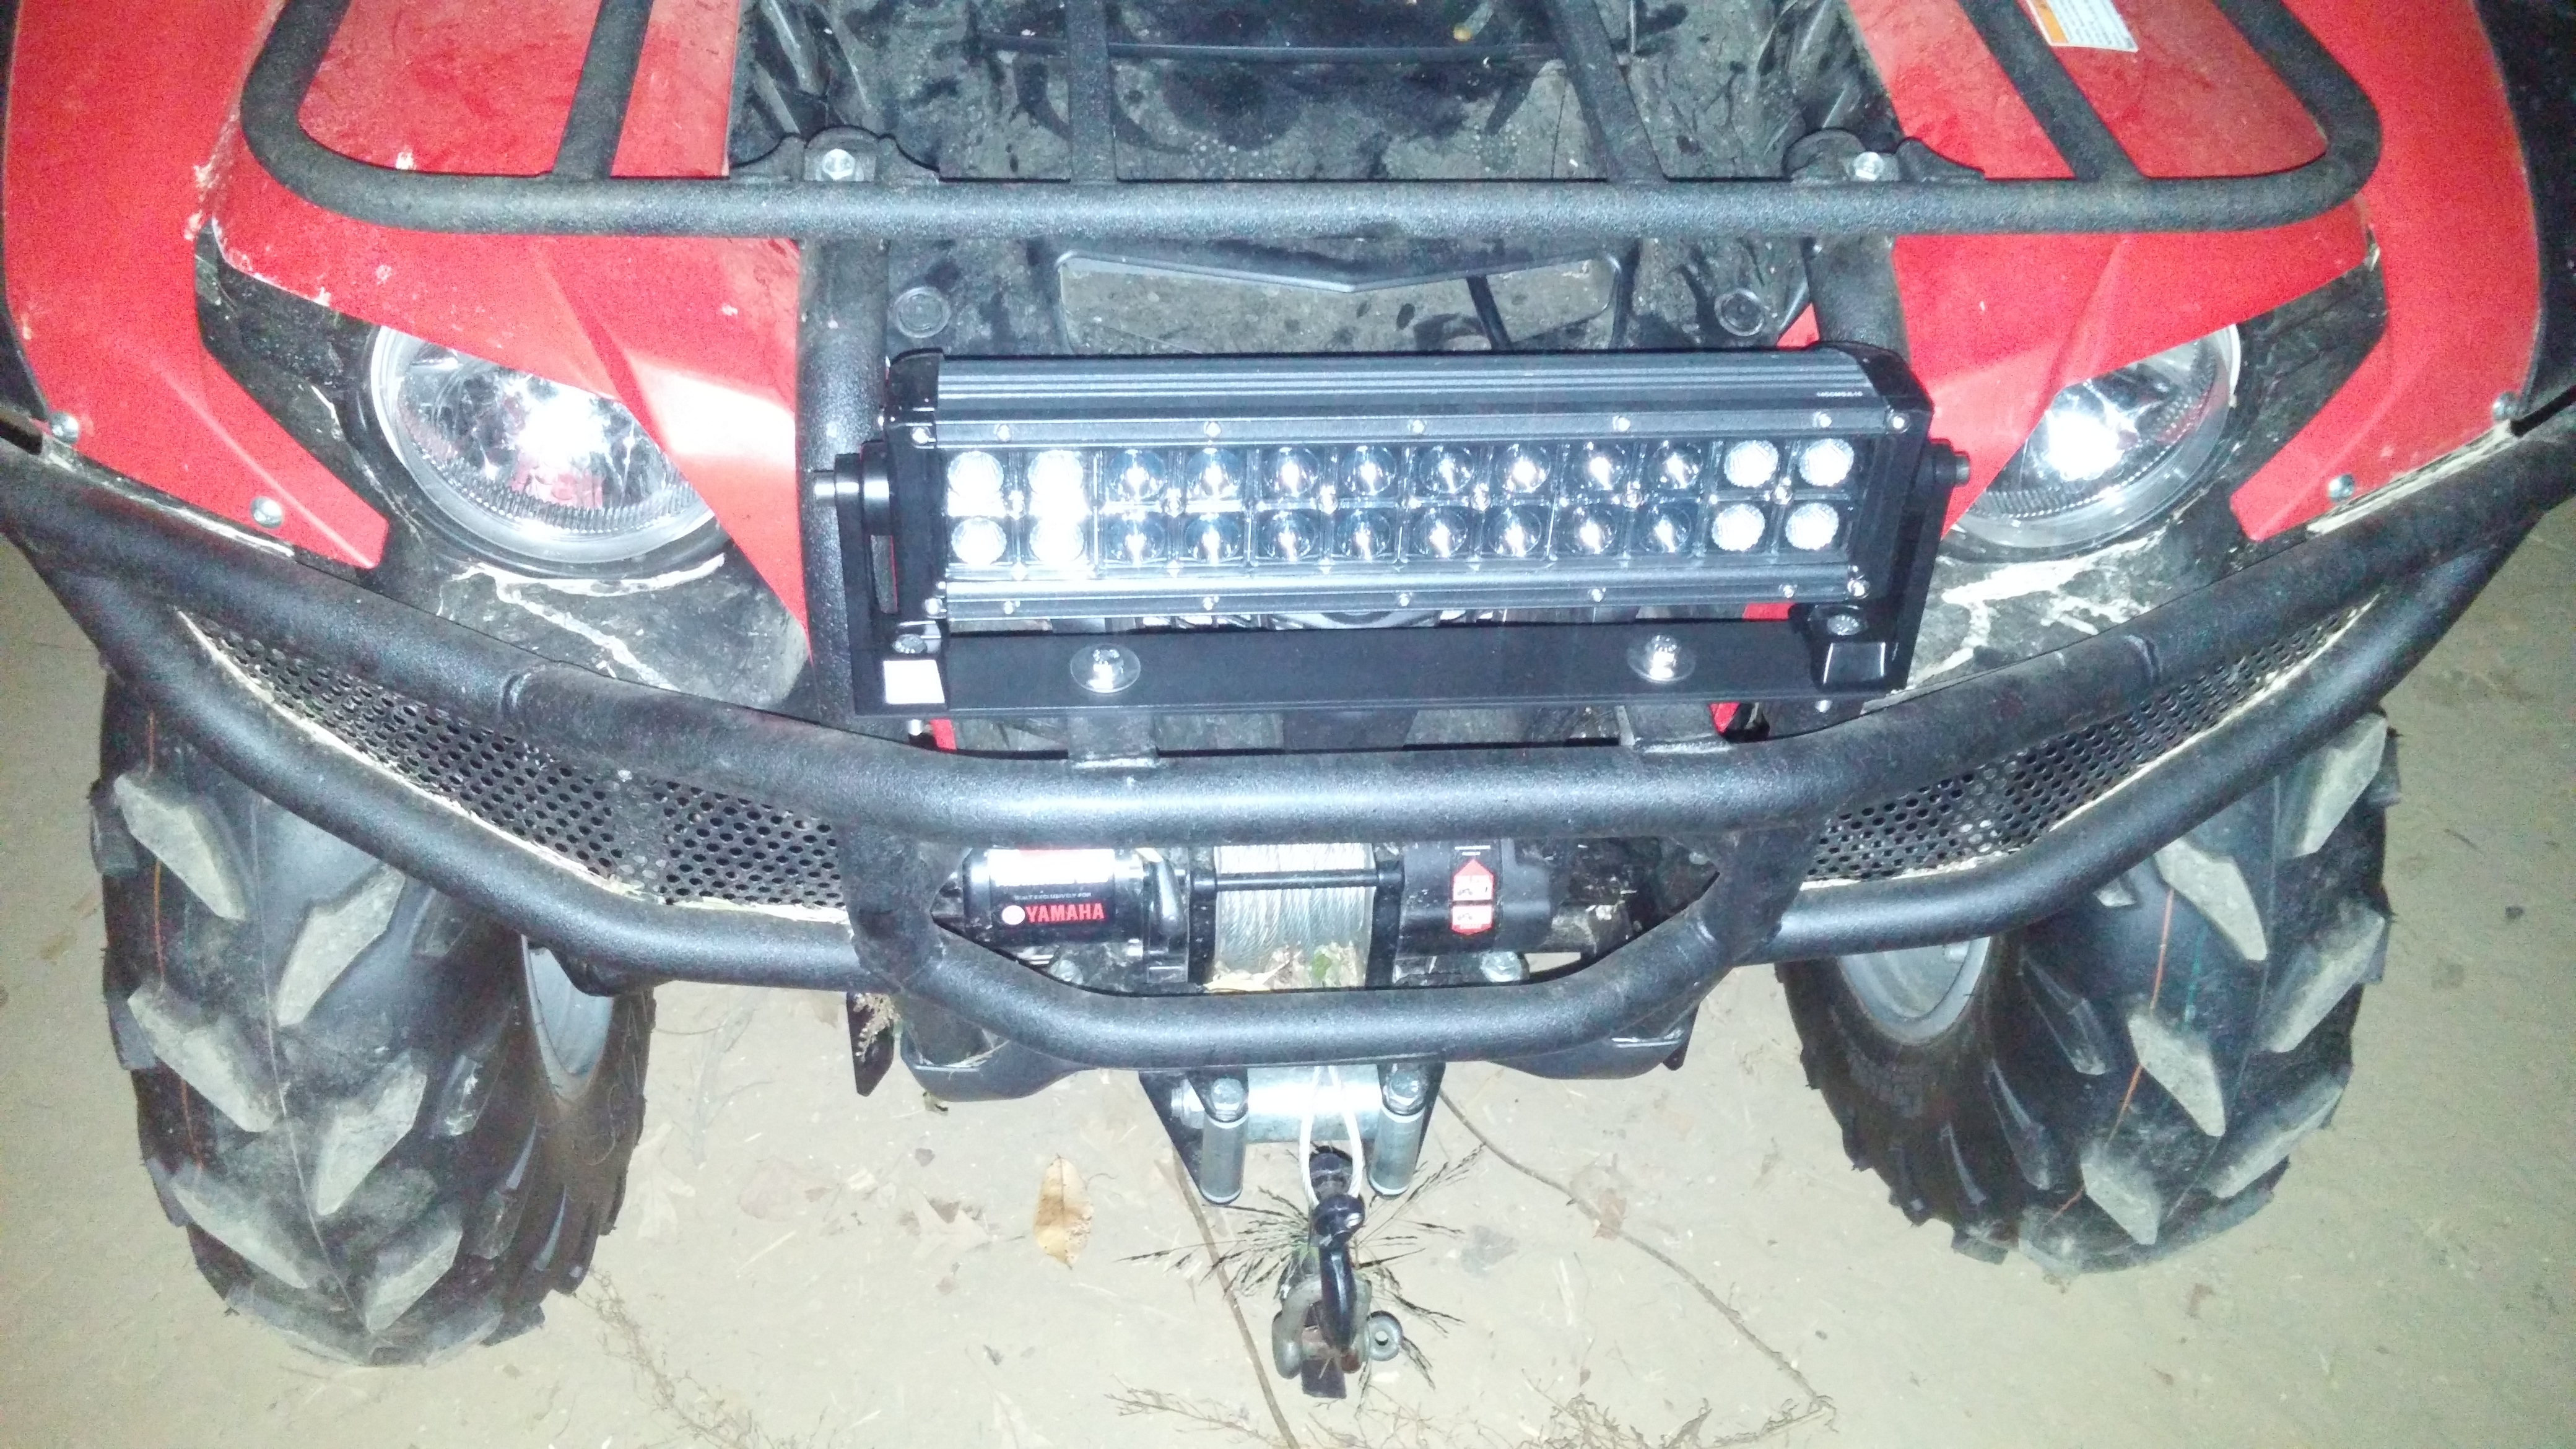 21368d1444842471 new light bar 14in opt7 cree led c2 front new light bar 14in opt7 cree led c2 yamaha grizzly atv forum opt7 light bar wiring harness at crackthecode.co